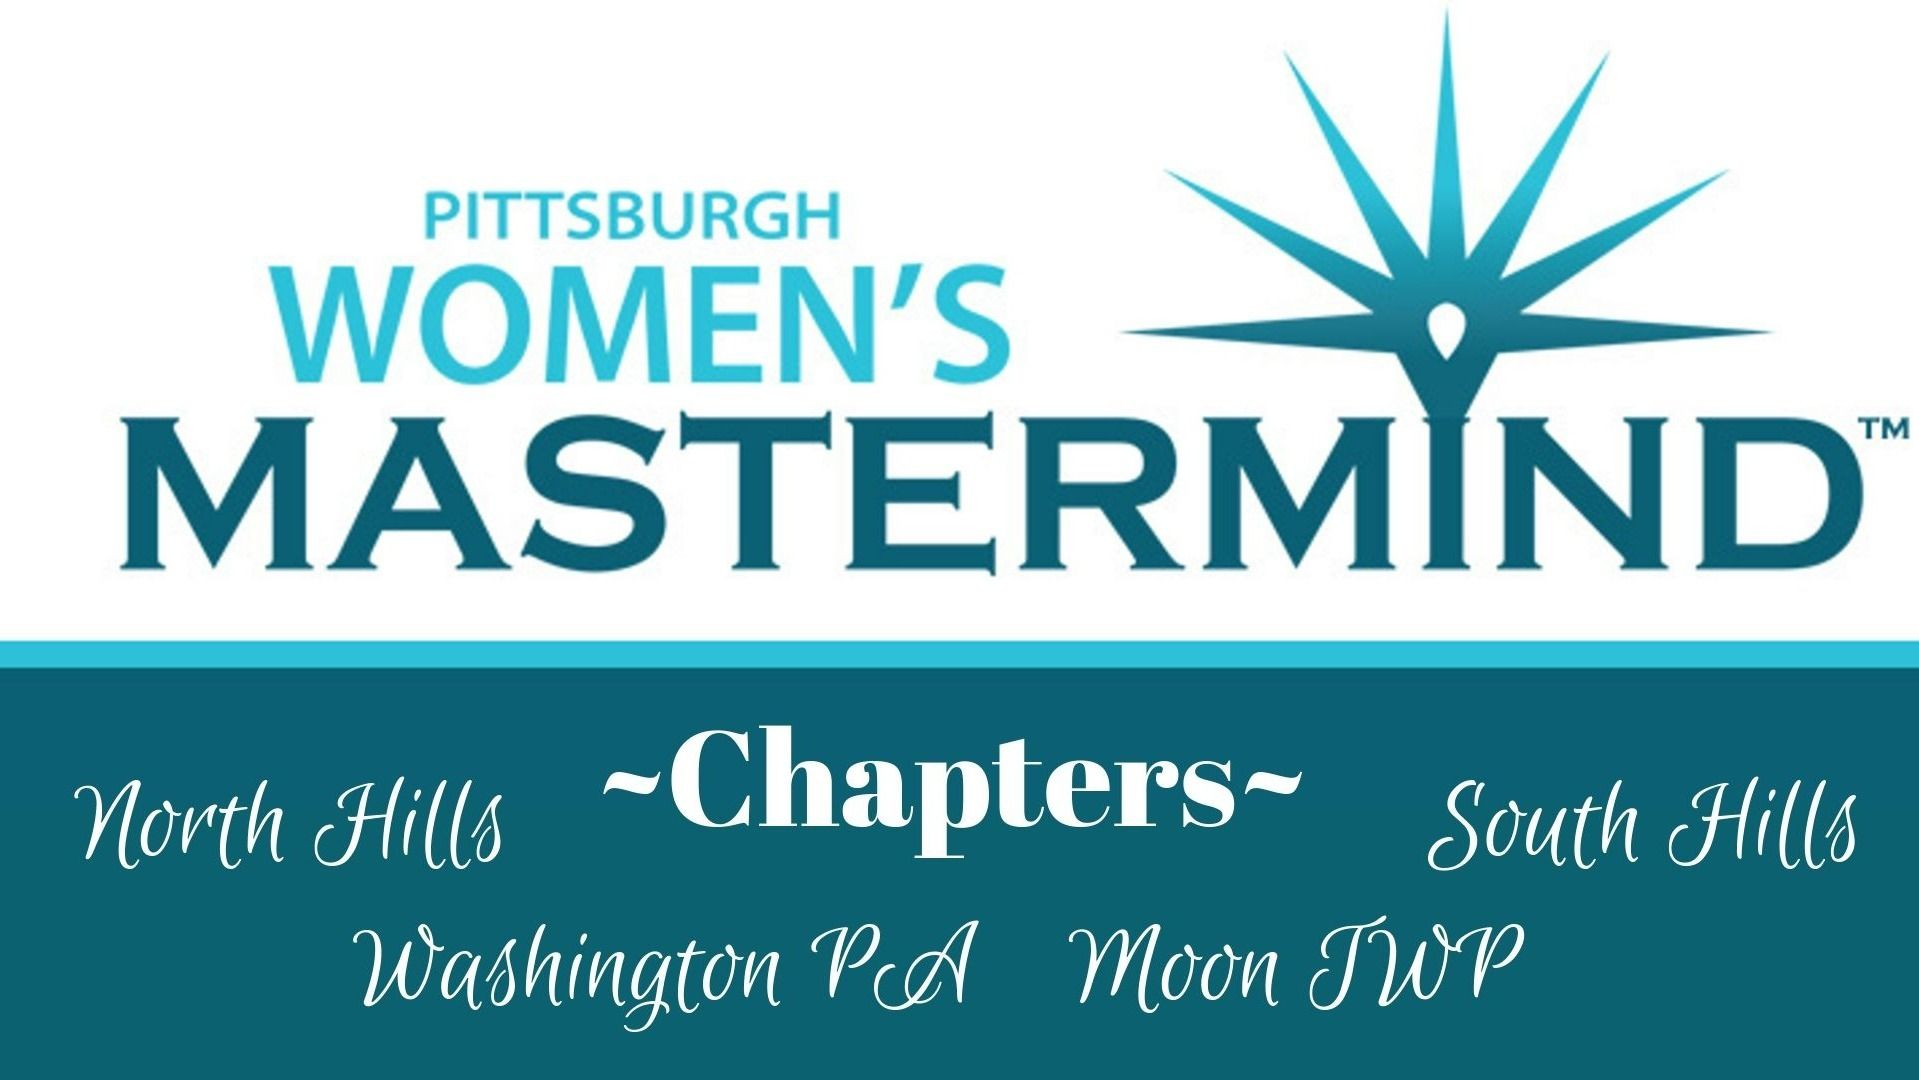 Pittsburgh Women's Mastermind for Entrepreneurs